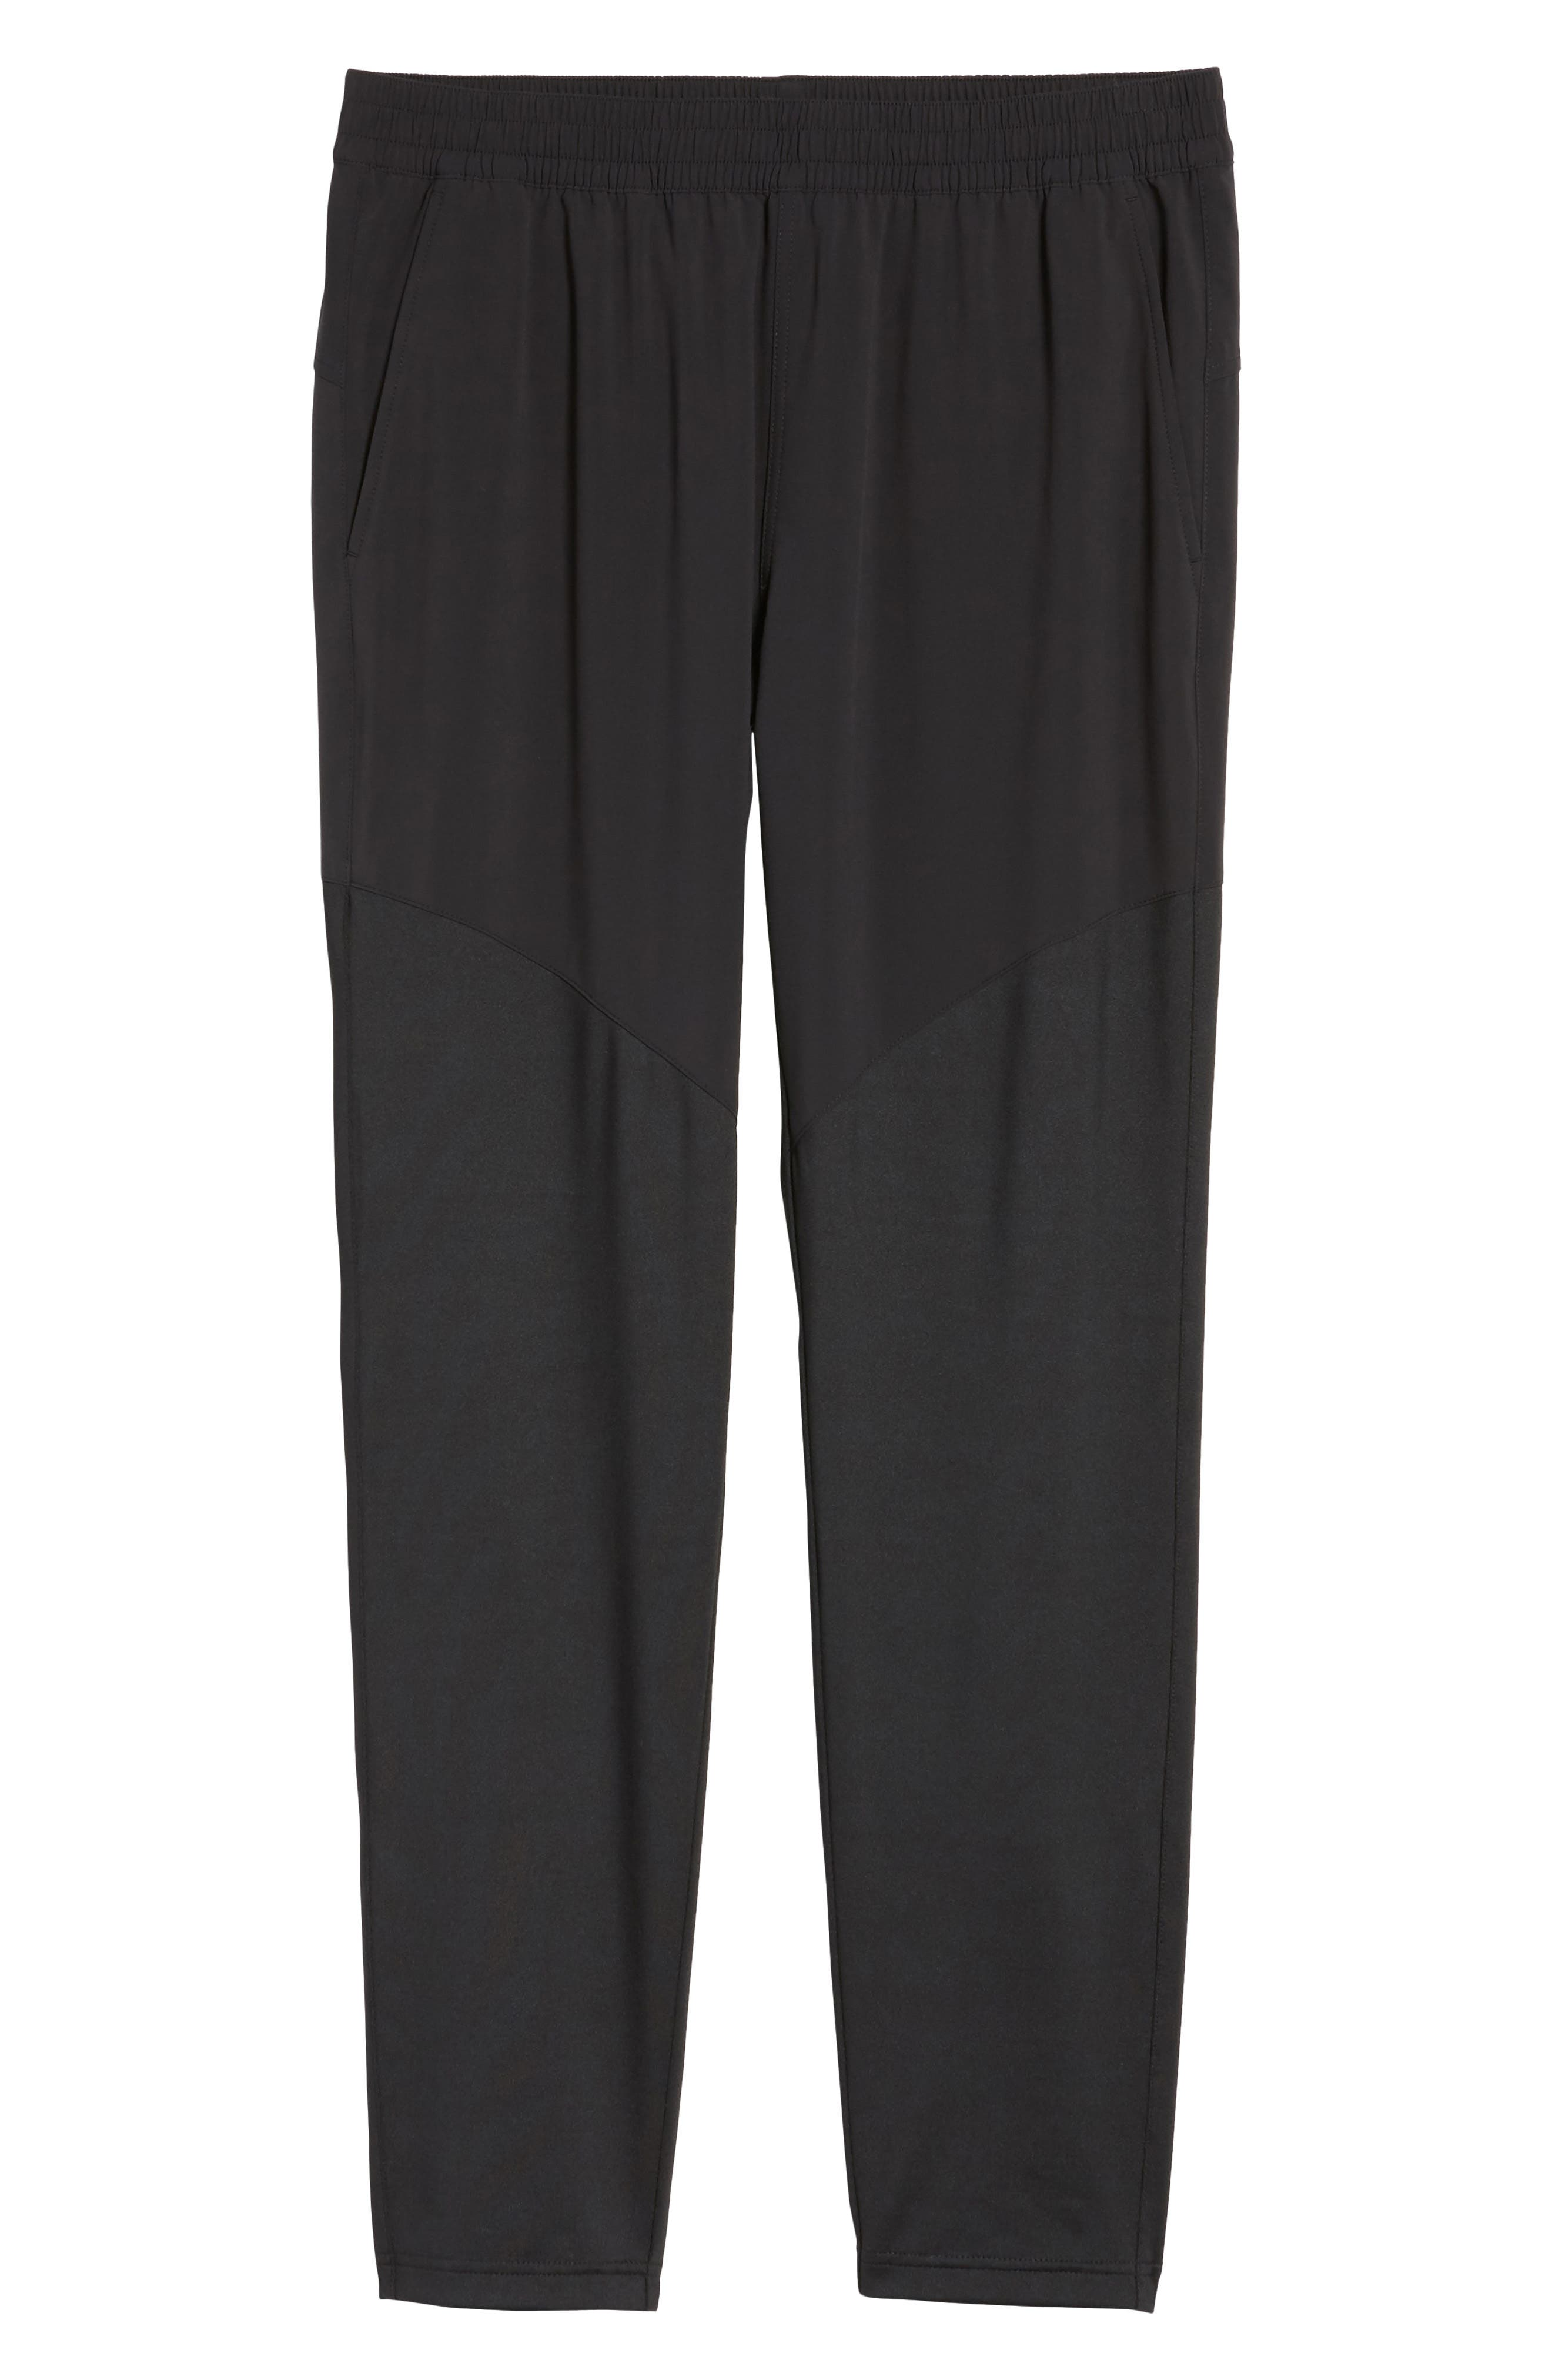 Graphite Tapered Athletic Pants,                             Alternate thumbnail 6, color,                             001